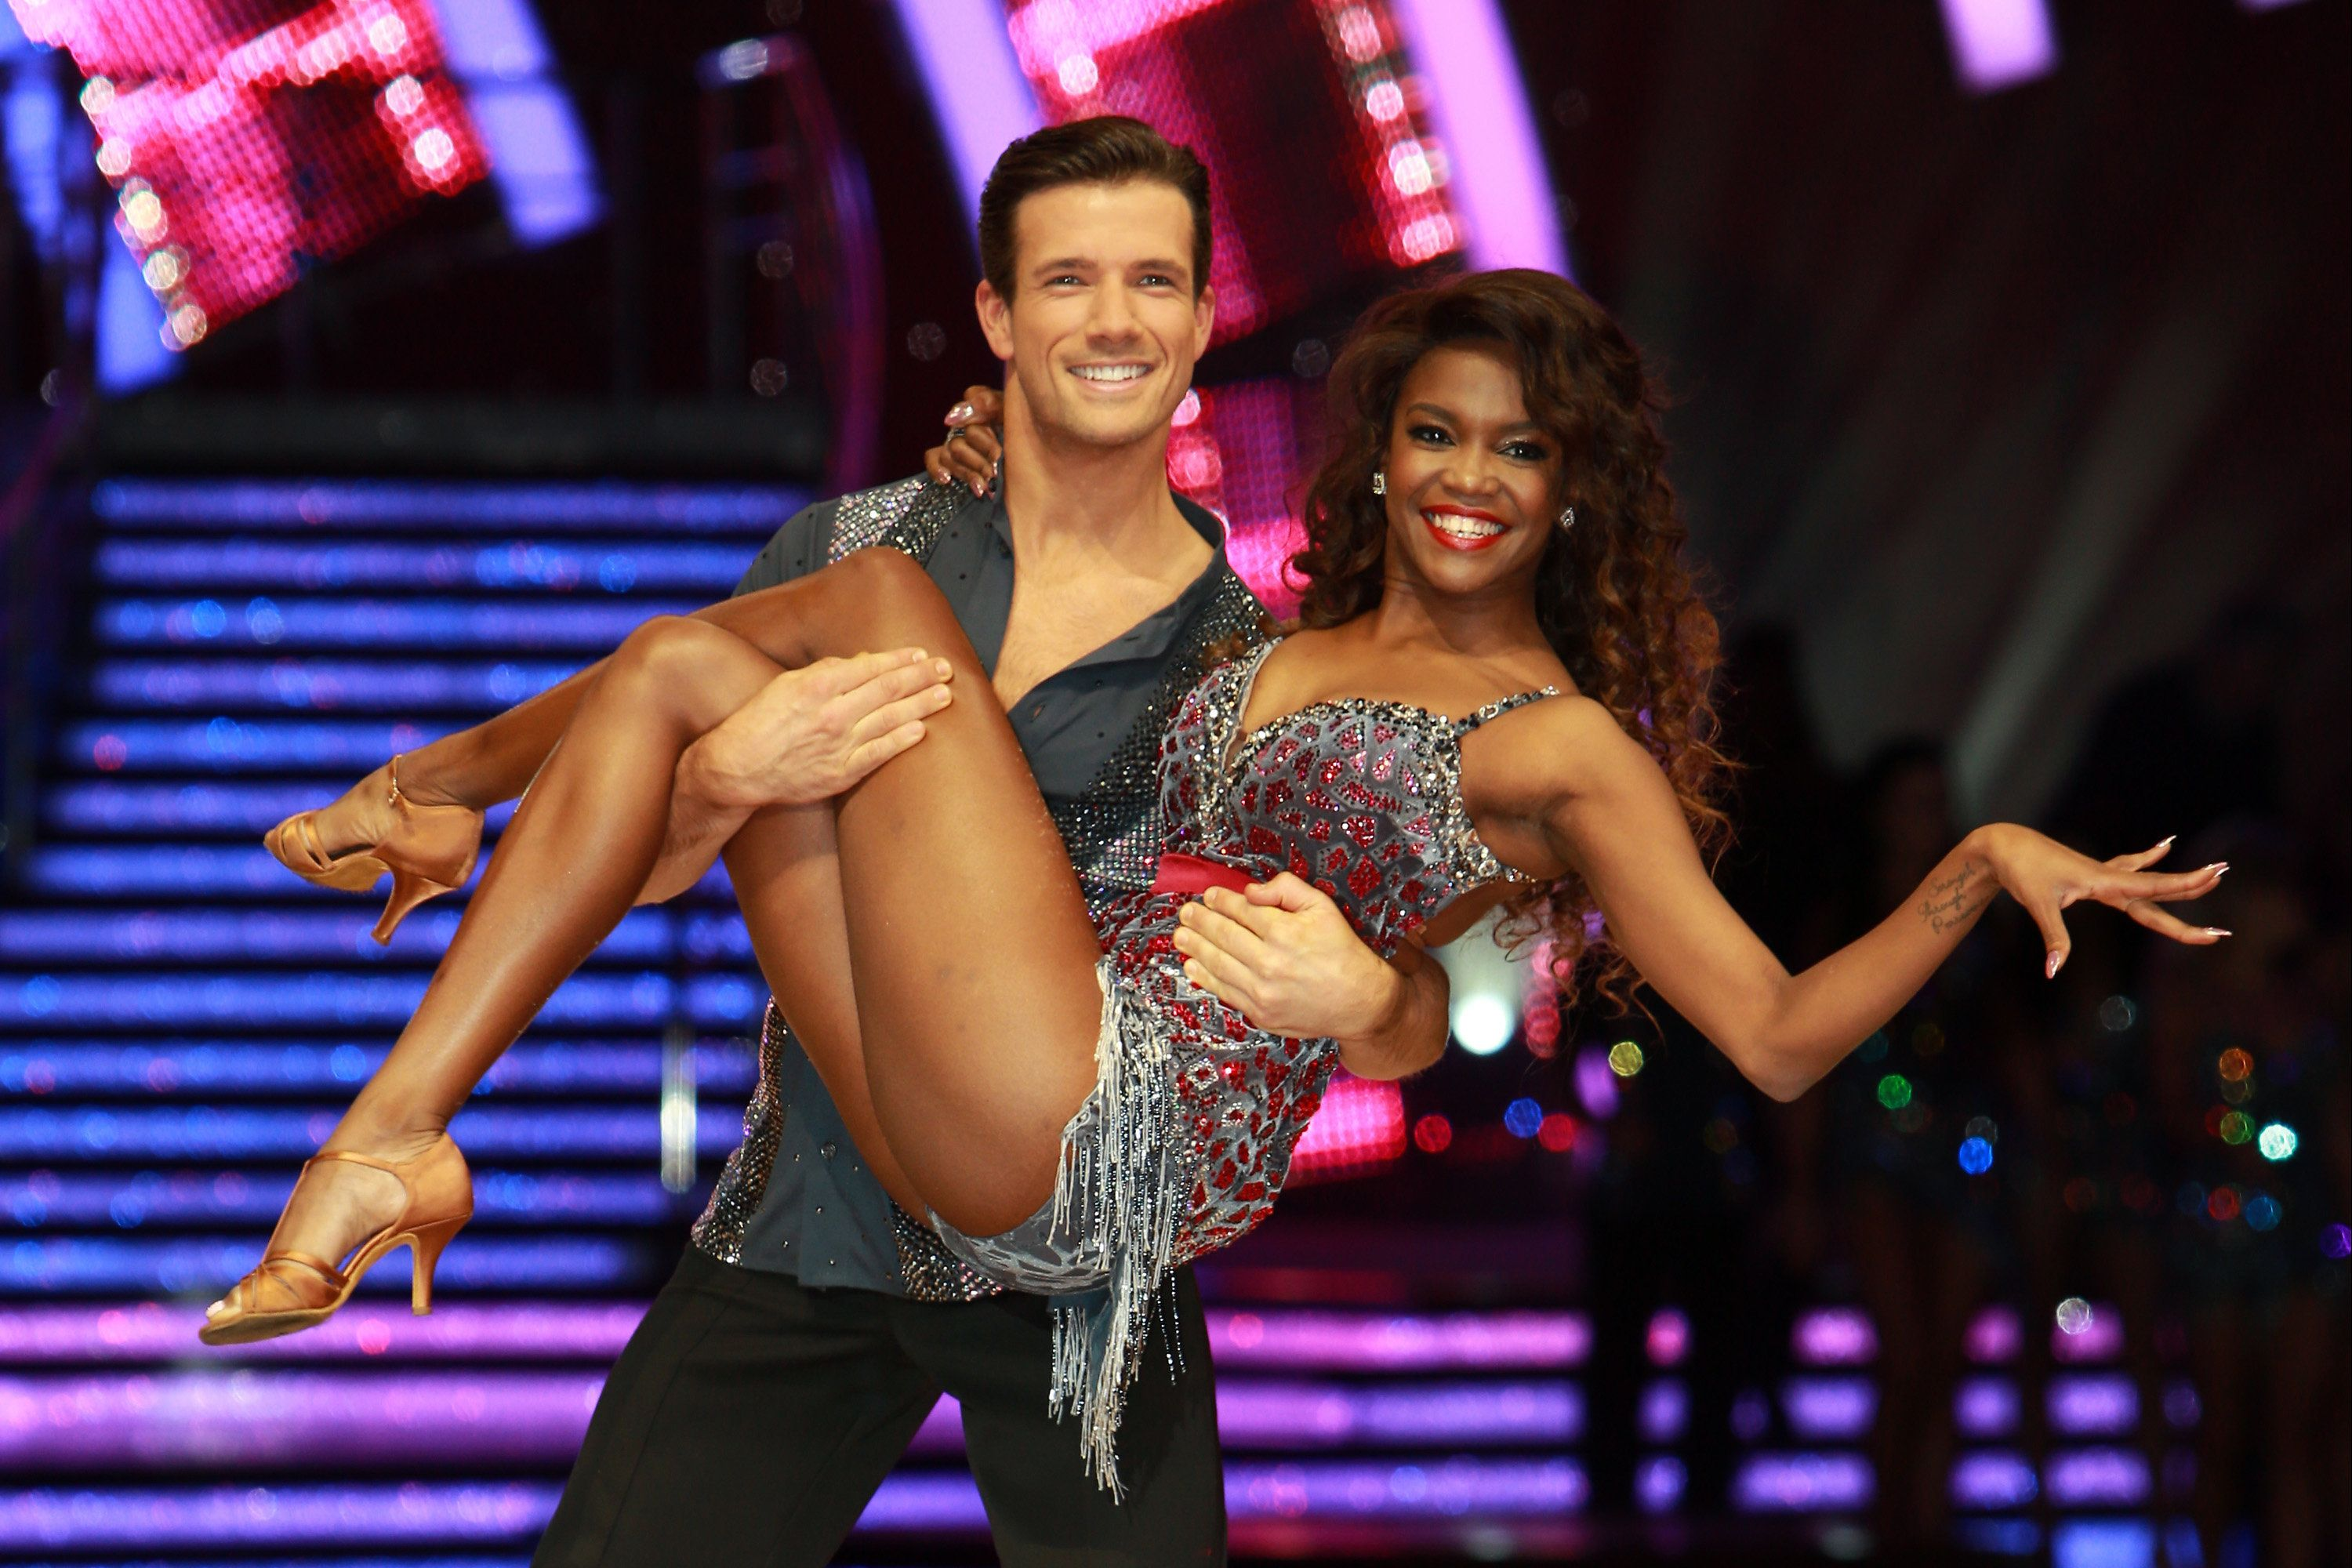 BIRMINGHAM, ENGLAND - JANUARY 19:  Danny Mac and Oti Mabuse attend the photocall for the 'Strictly Come Dancing' live tour on January 19, 2017 in Birmingham, England.  (Photo by Mark Milan/WireImage)